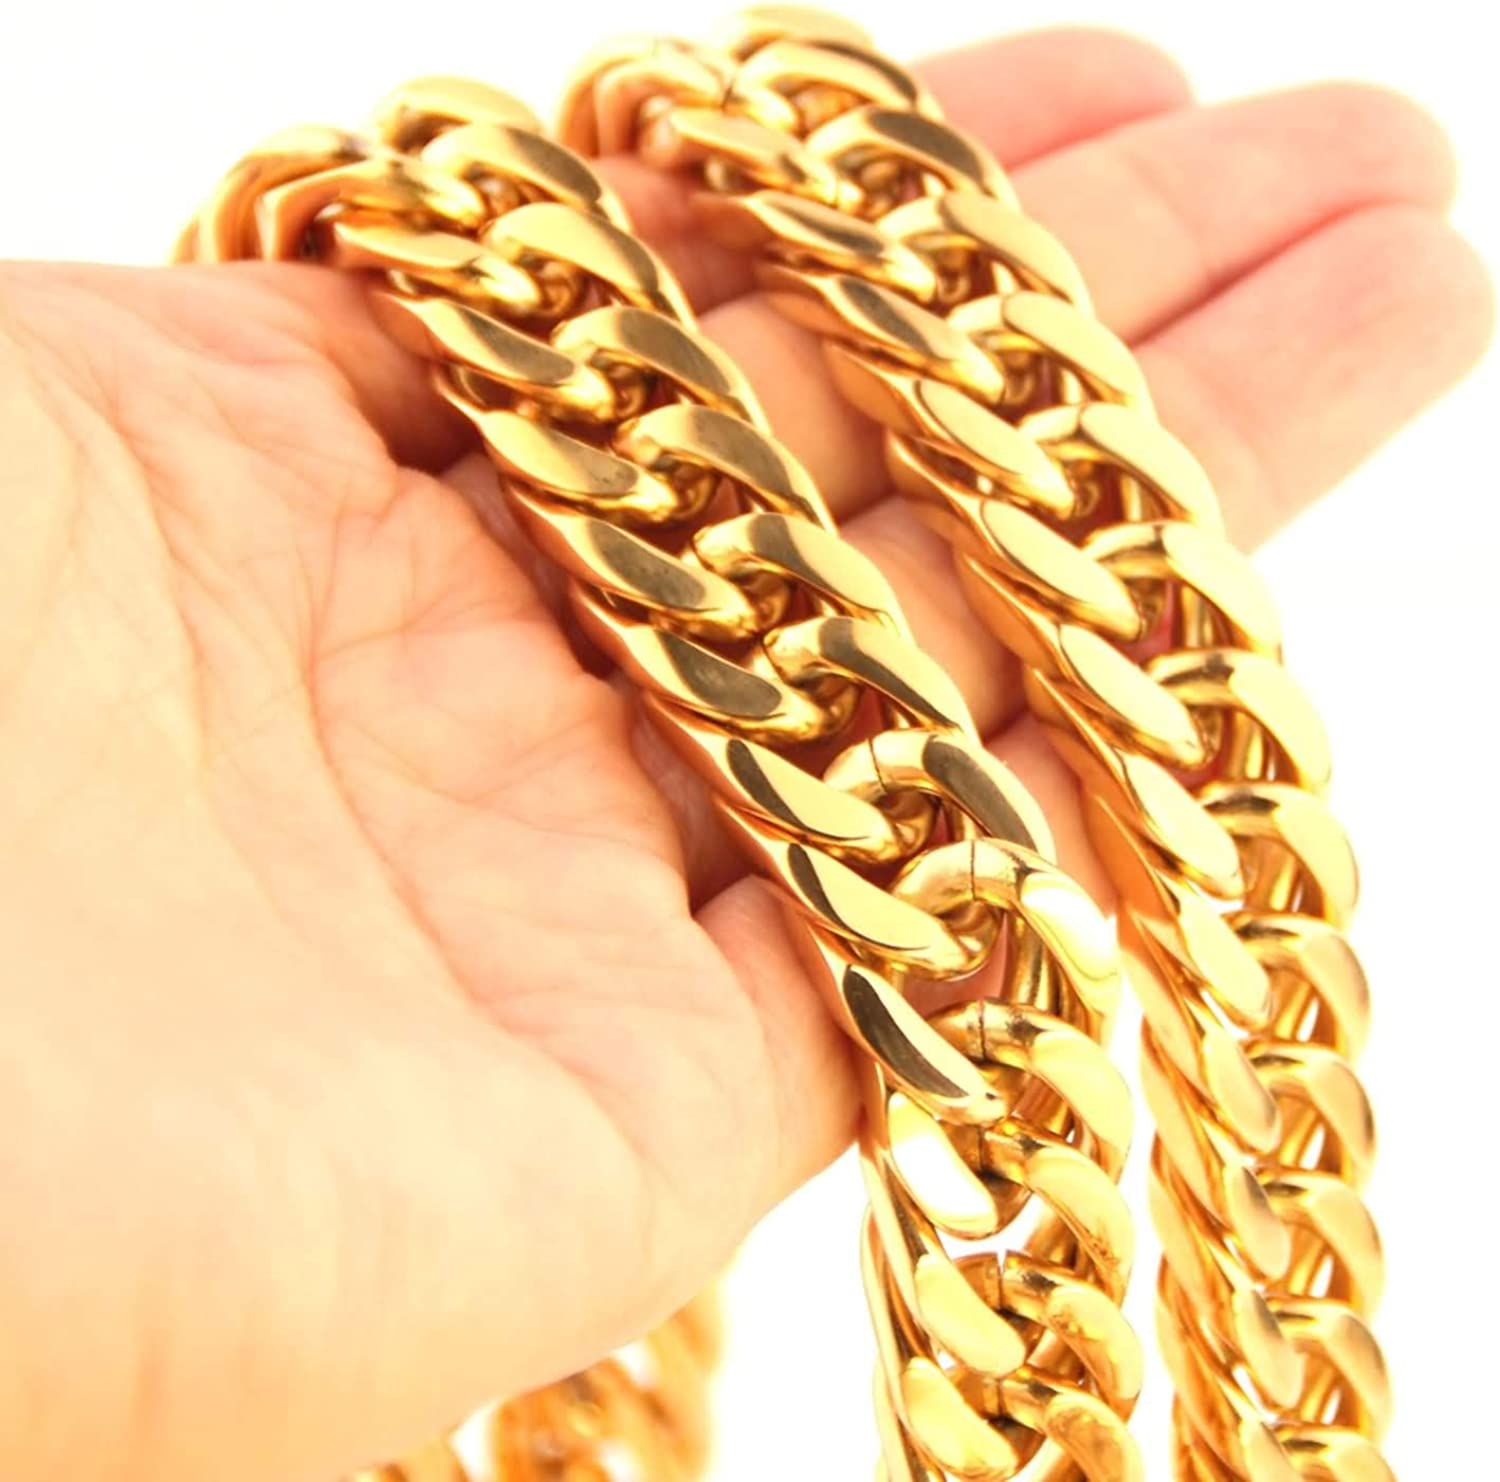 Gnzoe Mens Necklace Chains Stainless Steel Curb Chain Necklace for Men